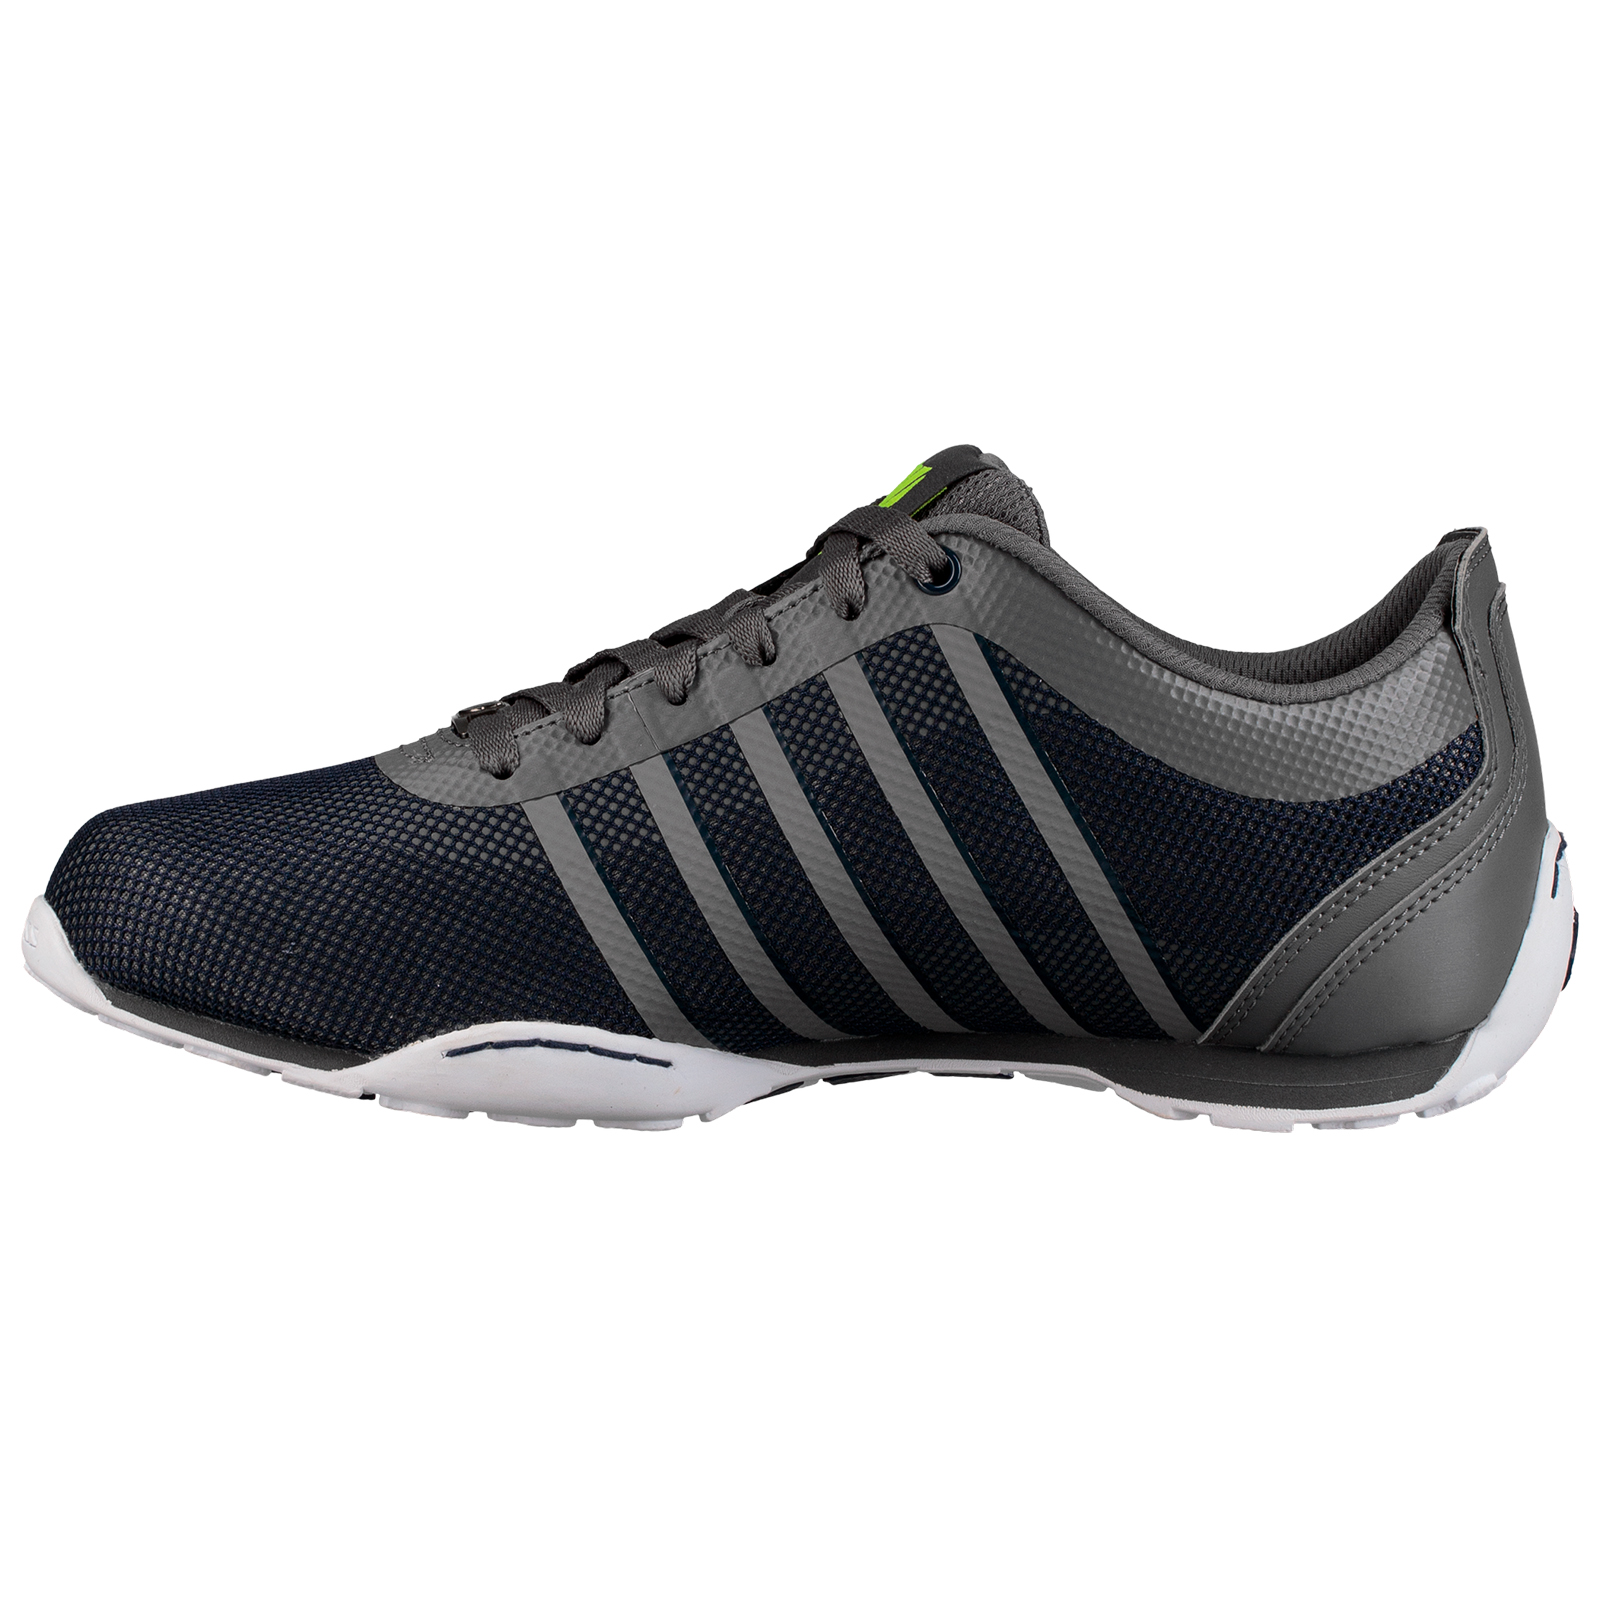 K-Swiss  Uomo 1.5 Tech Arvee Schuhes Sneaker Designer Iconic Mesh Fashion Sneaker Schuhes Trainers fe86a2